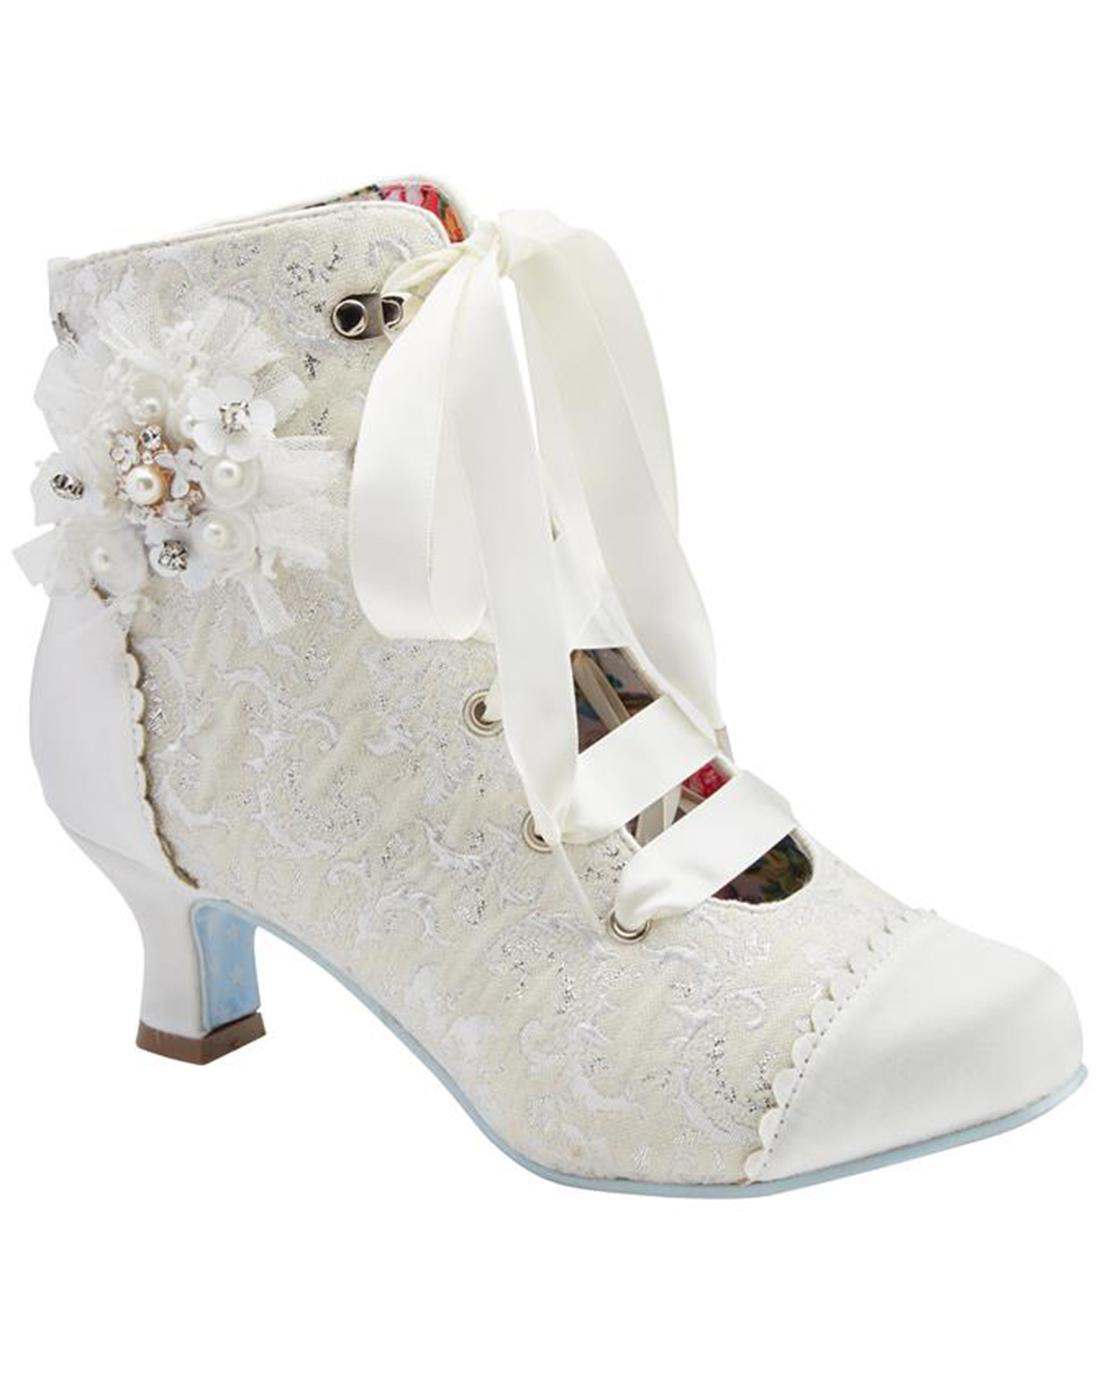 Hitched JOE BROWNS Vintage Heeled Bridal Boots